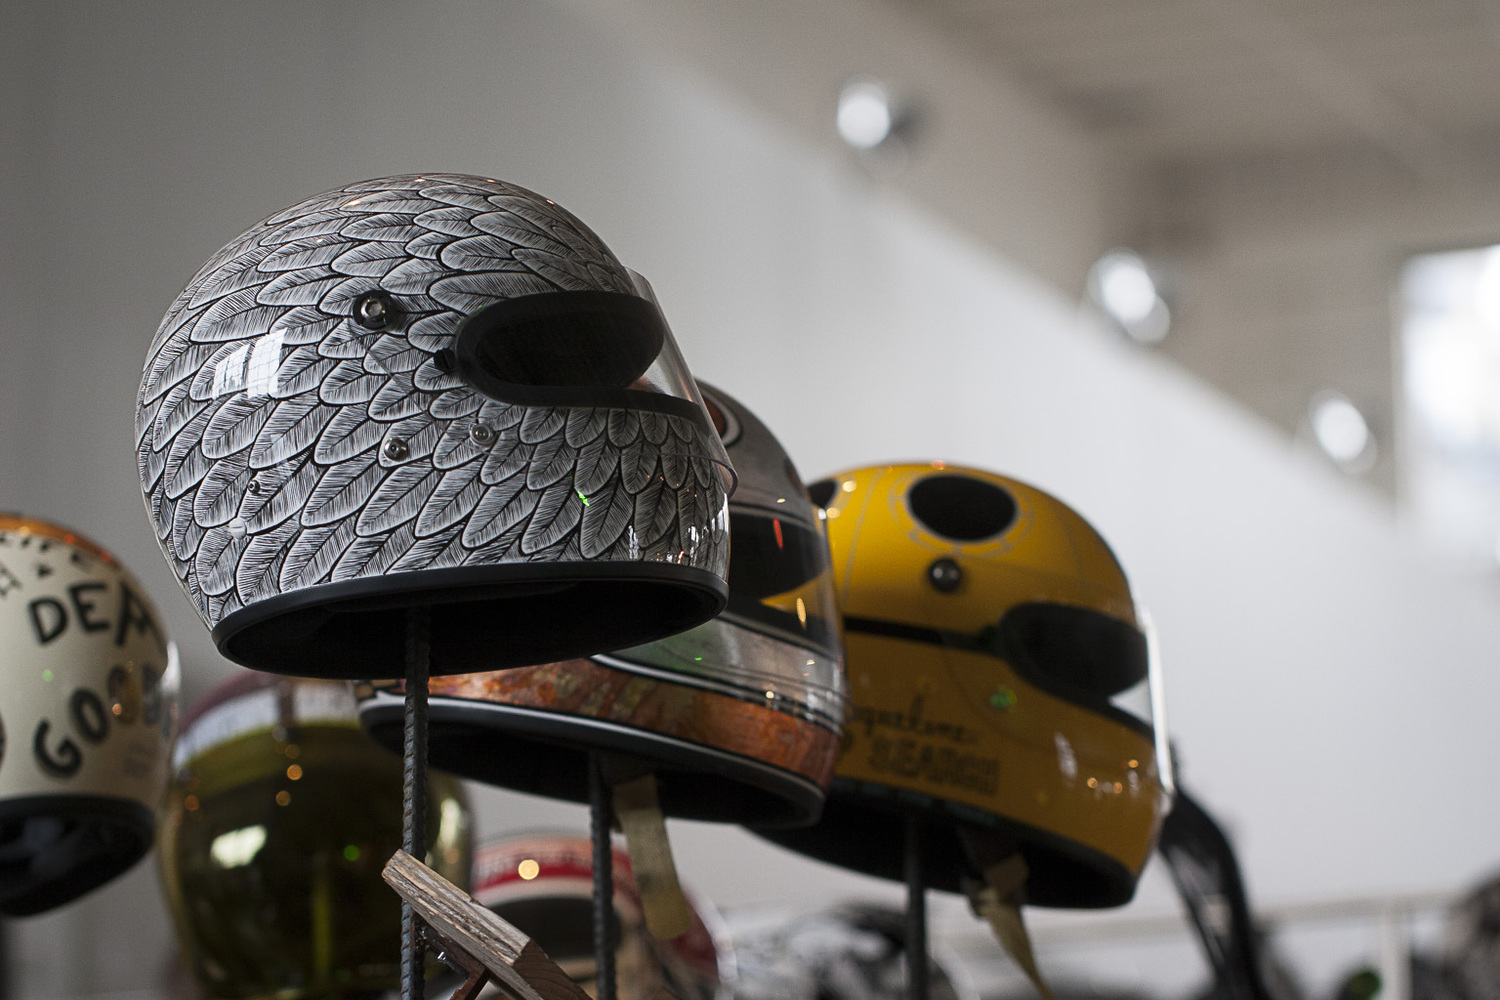 Casque - Page 5 Ironandair_MG_3313_MG_3313